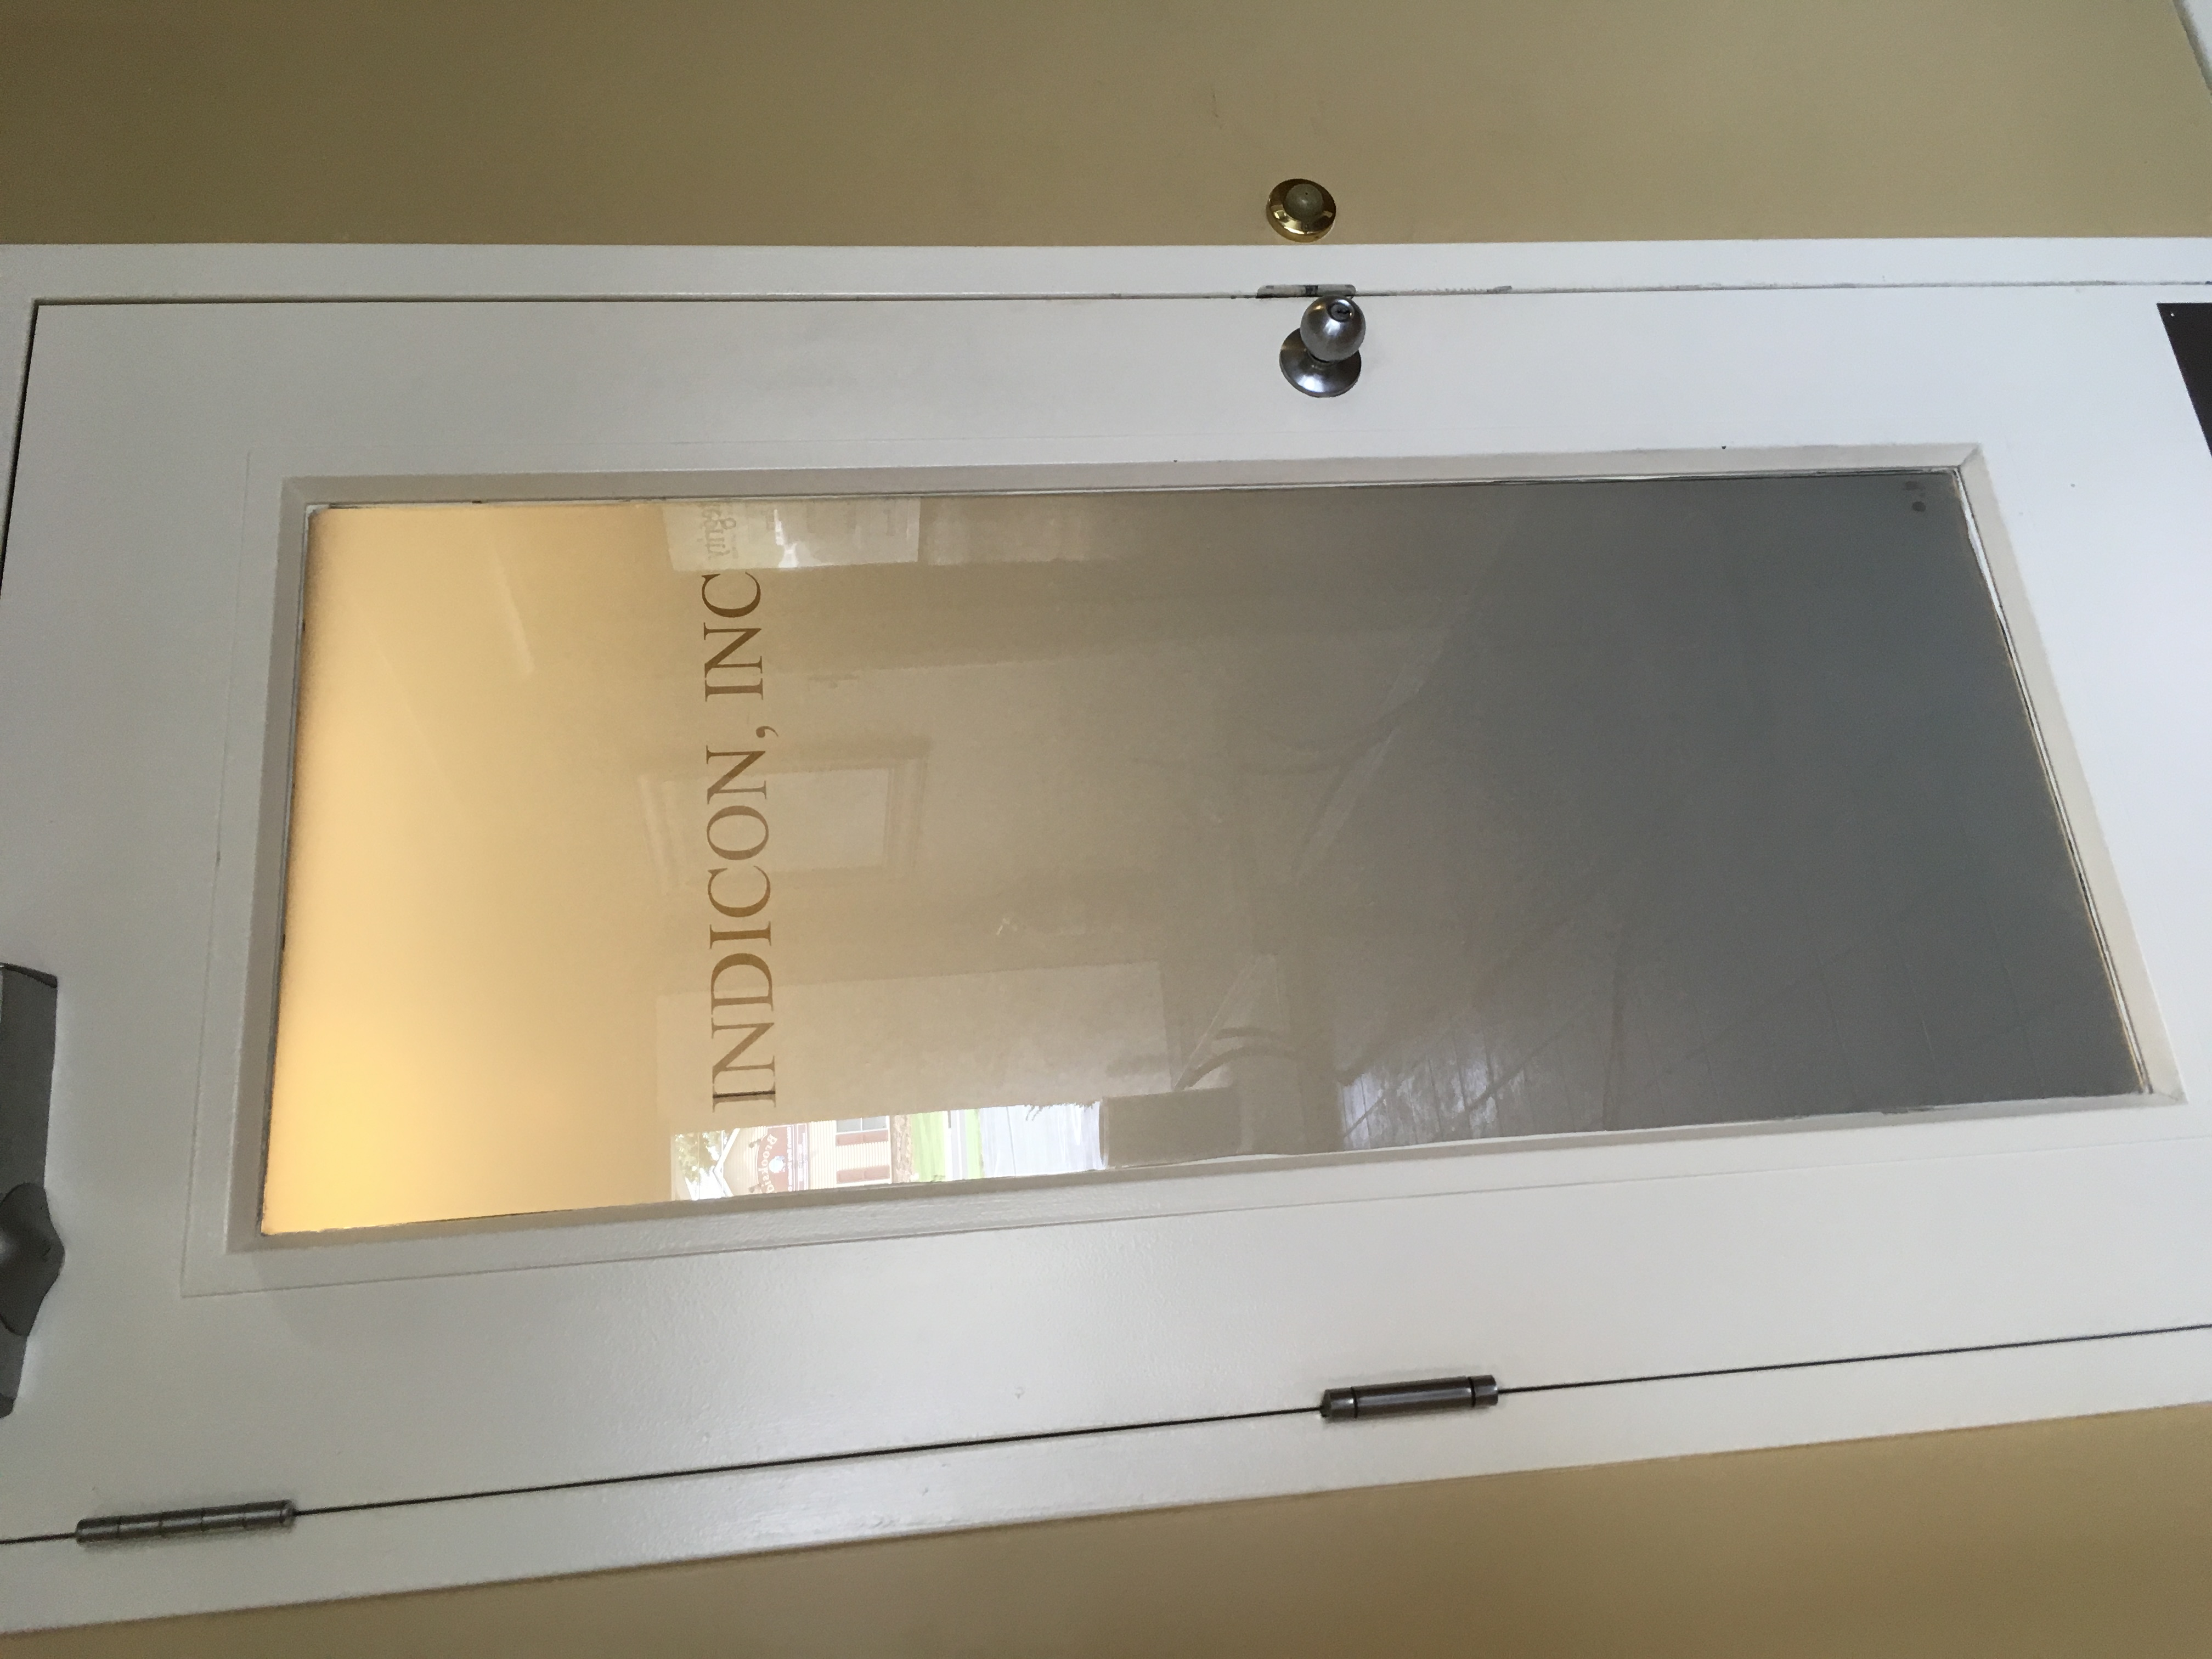 frosted privacy film with logo